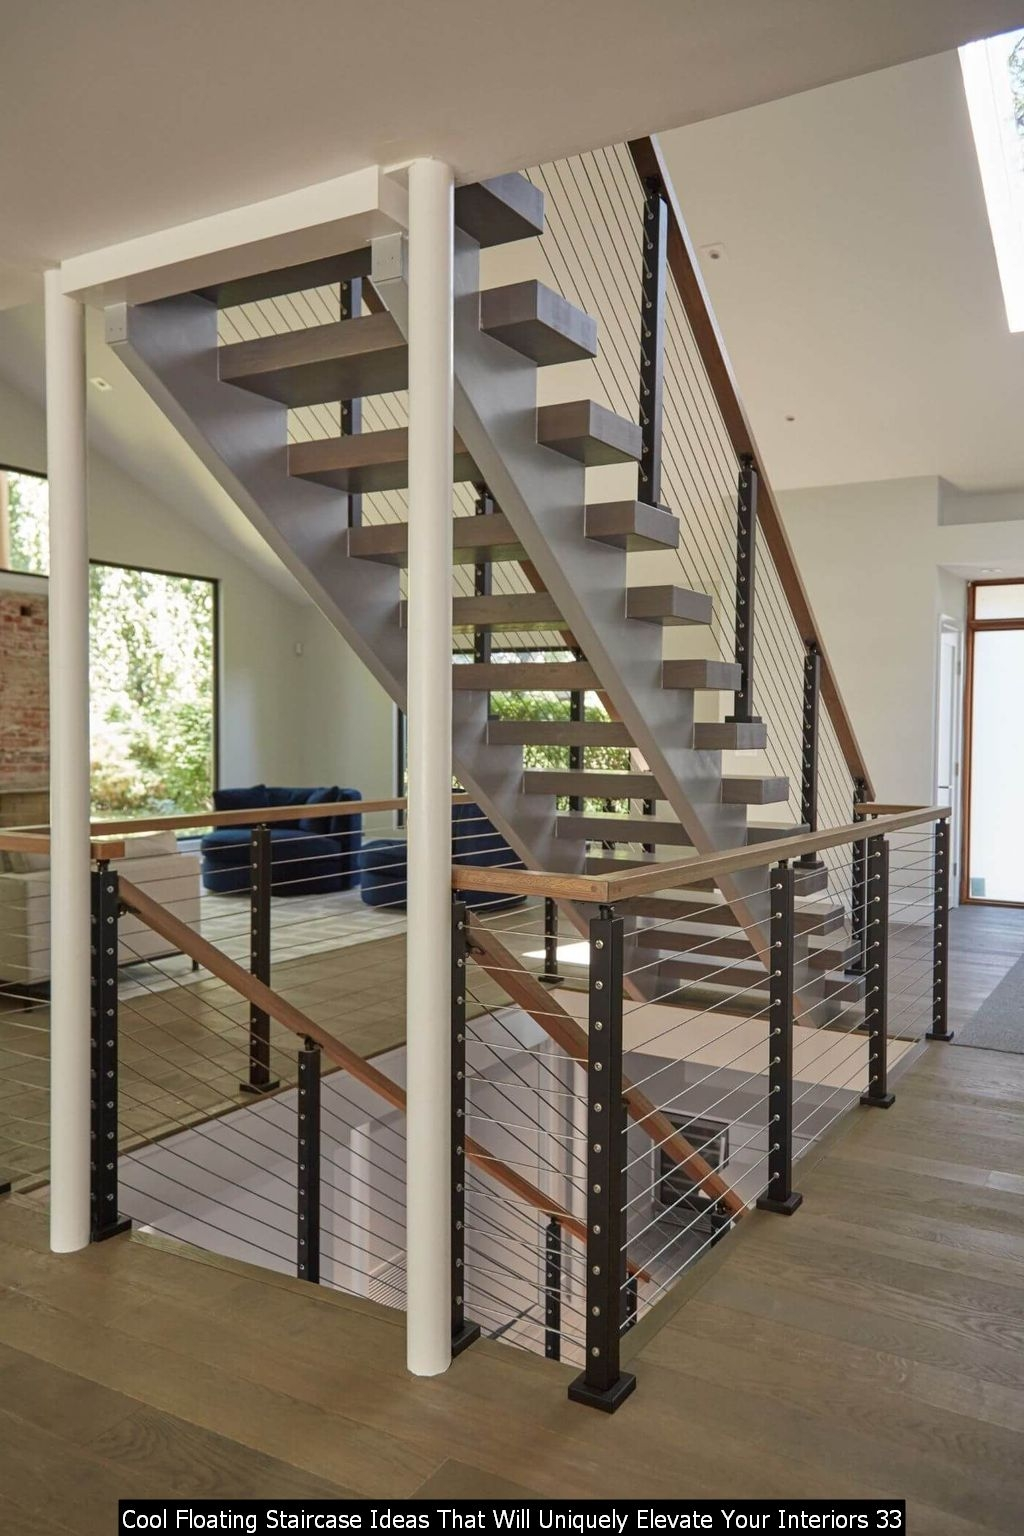 Cool Floating Staircase Ideas That Will Uniquely Elevate Your Interiors 33